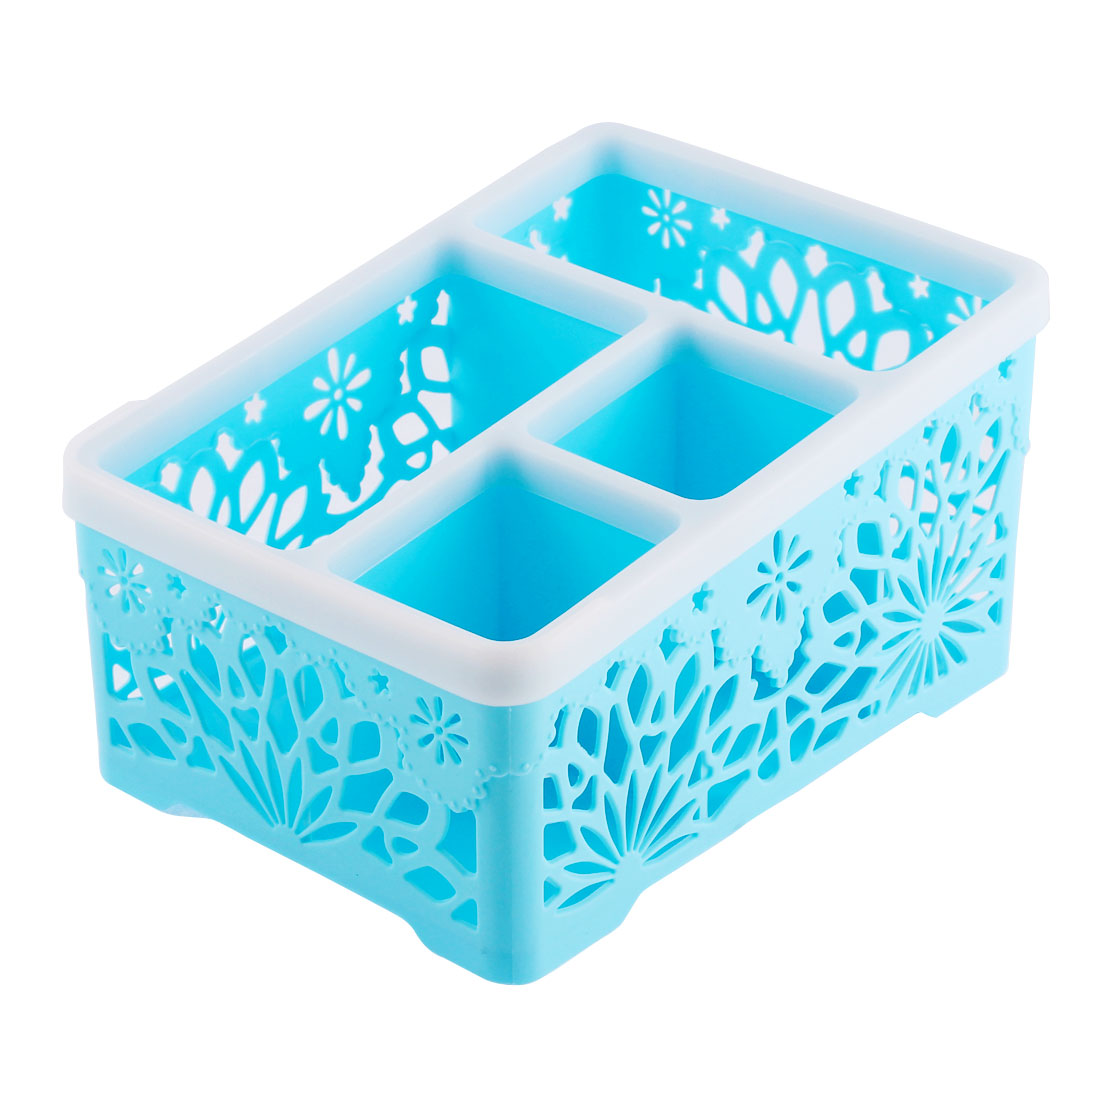 Household Hollow Out Flower Design 4 Spaces Storage Organizer Container Box Sky Blue